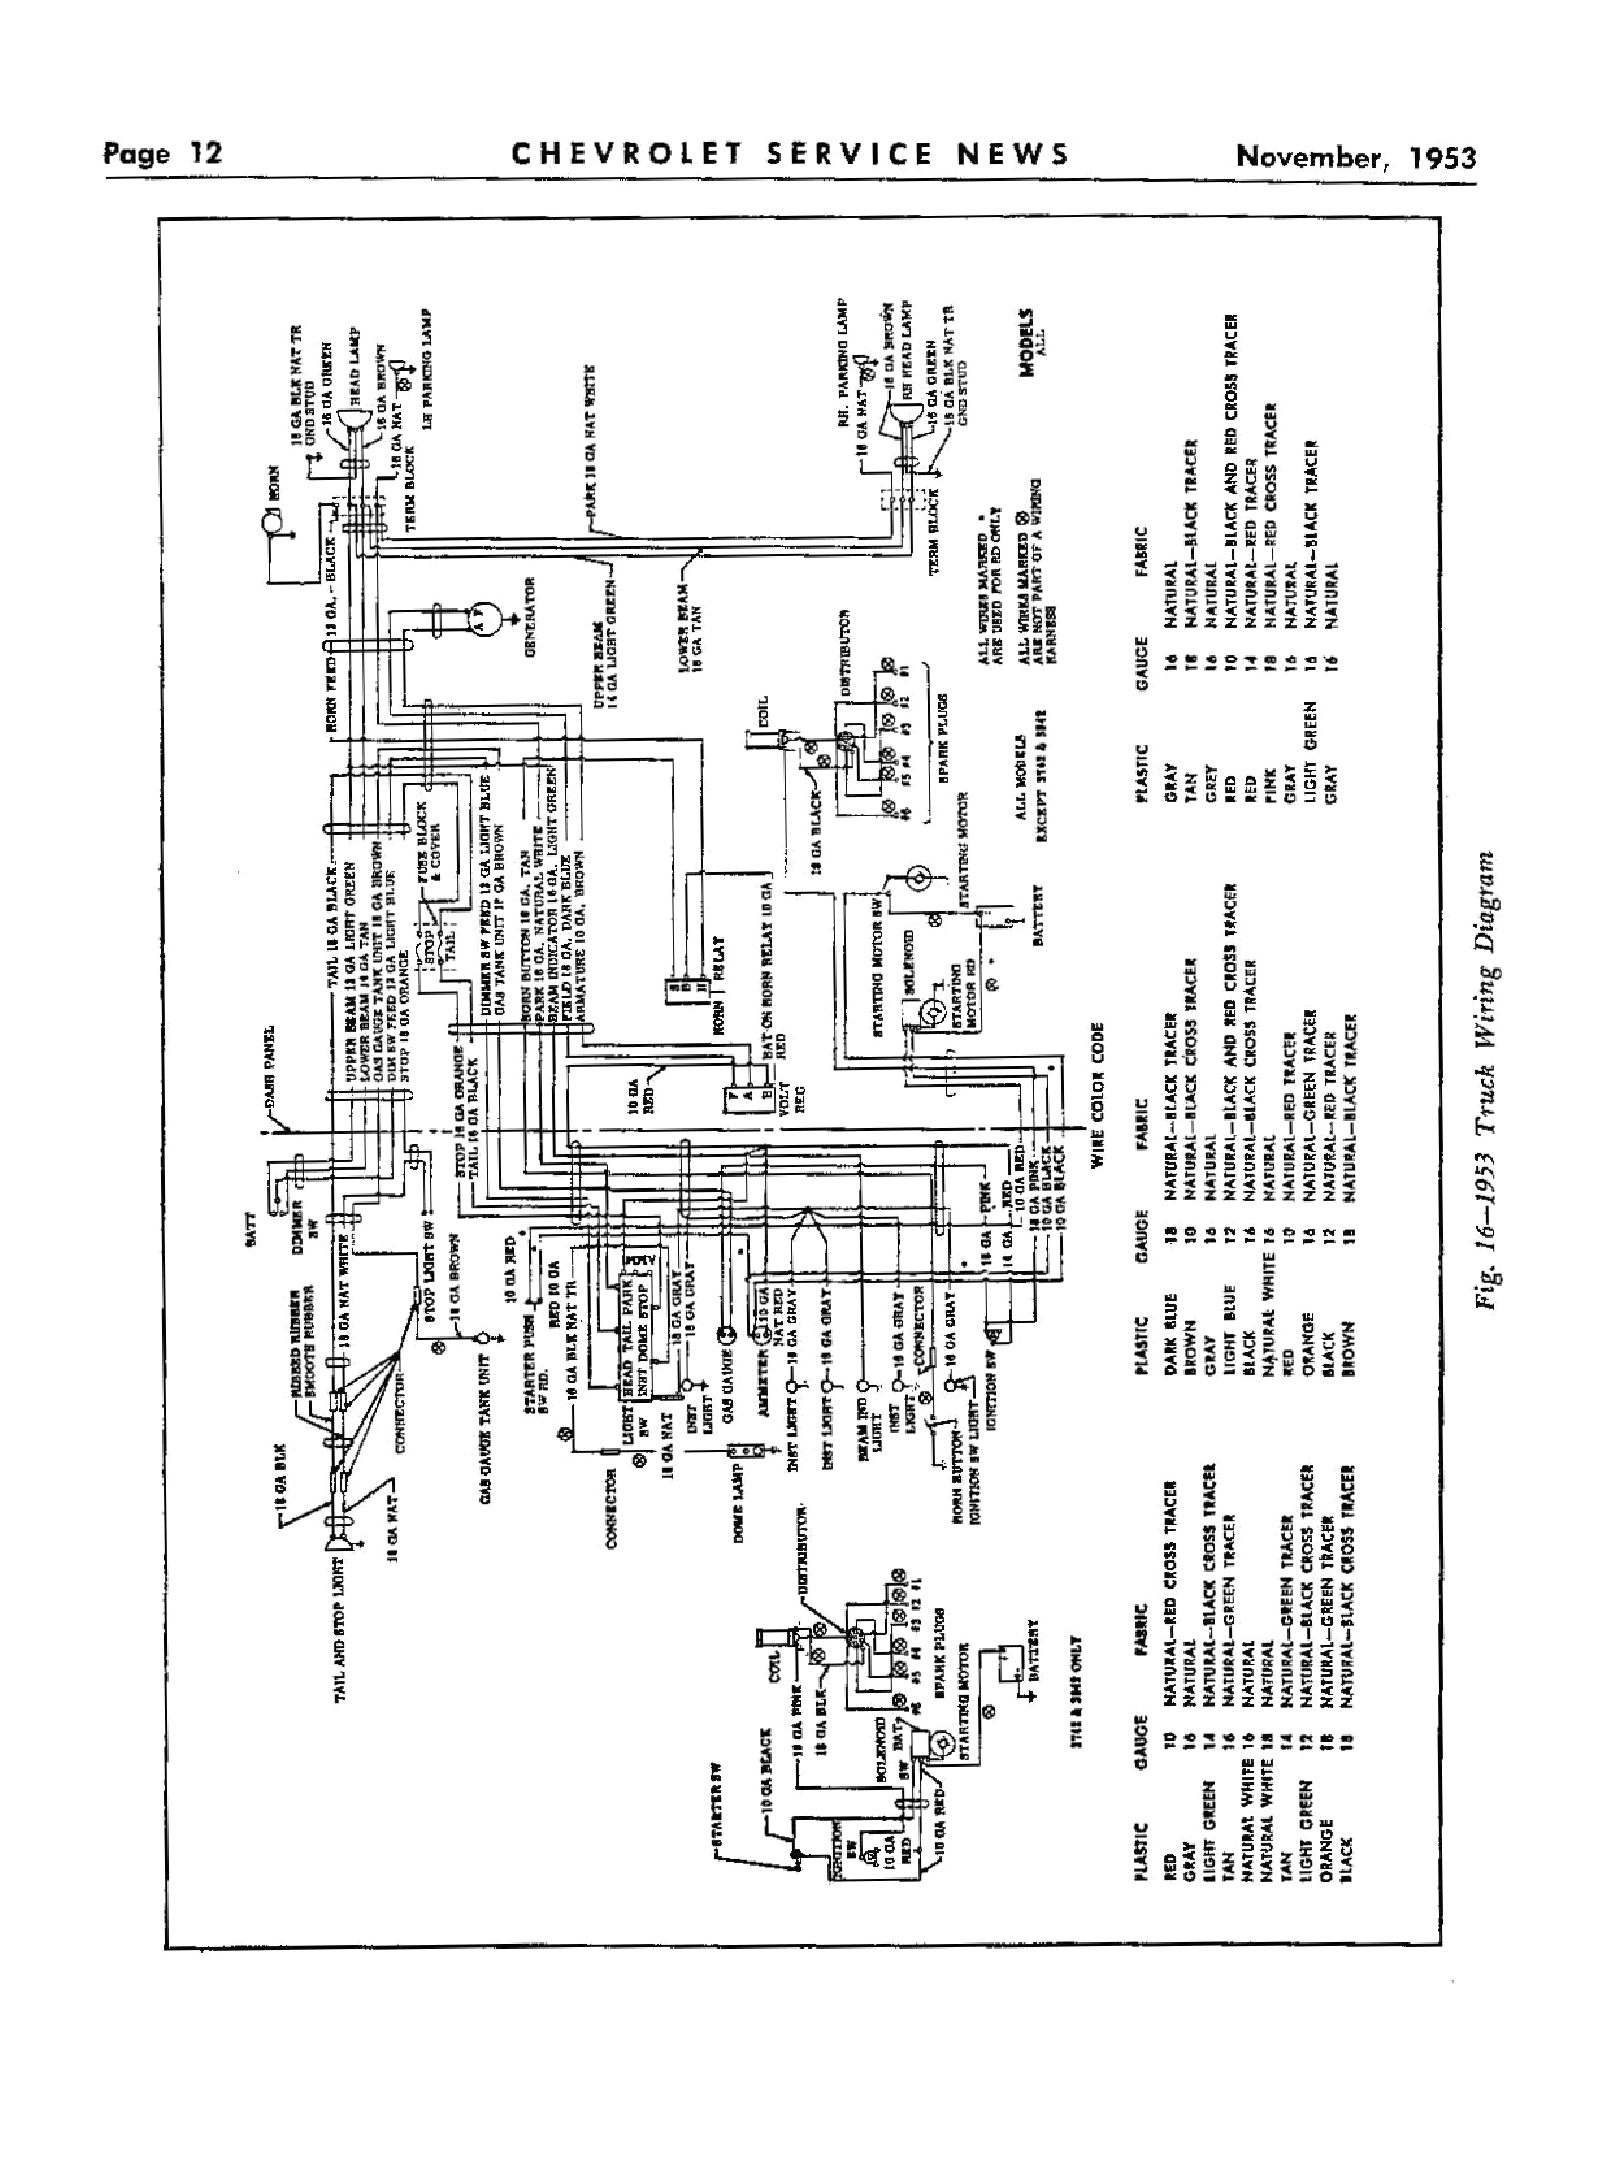 1957 chevrolet truck wiring diagram wiring diagrams and schematics 57 chevy ignition switch trifive 1955 1956 1957 wiring diagram